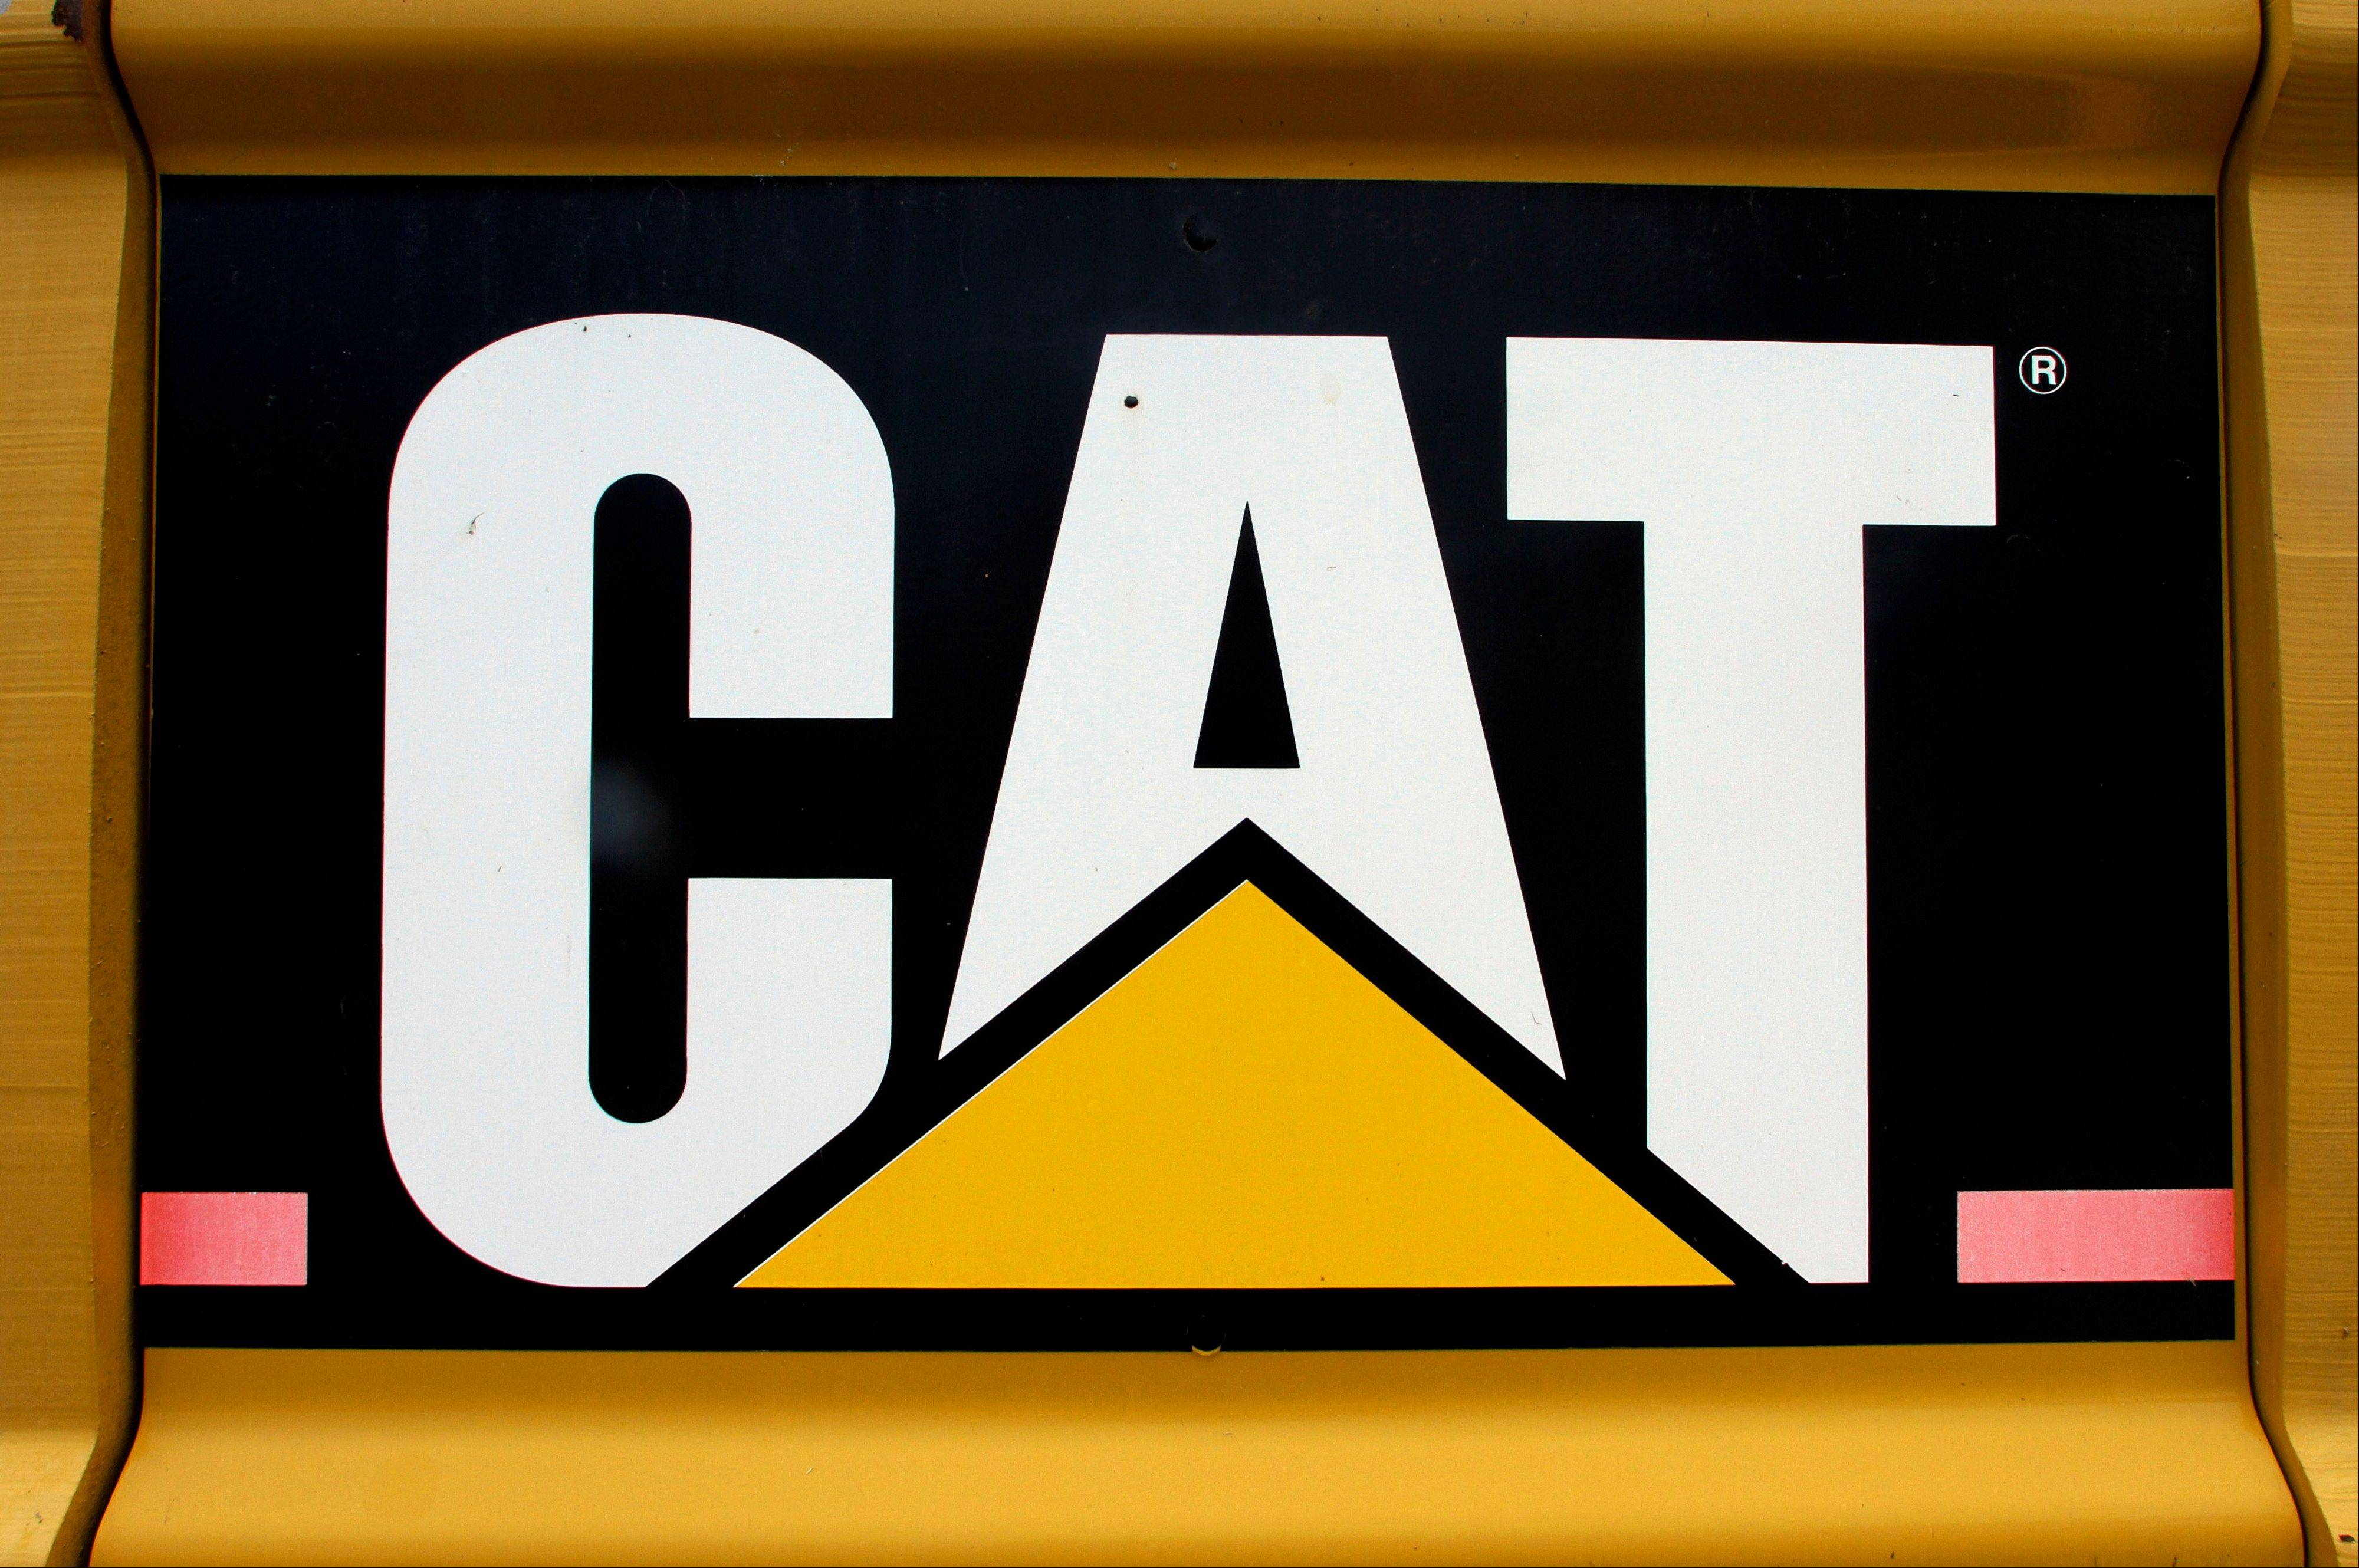 Peoria-based Caterpillar Inc. said Thursday it will no longer give money to the Boy Scouts of America because the organization bars homosexual adults from serving as scout leaders.